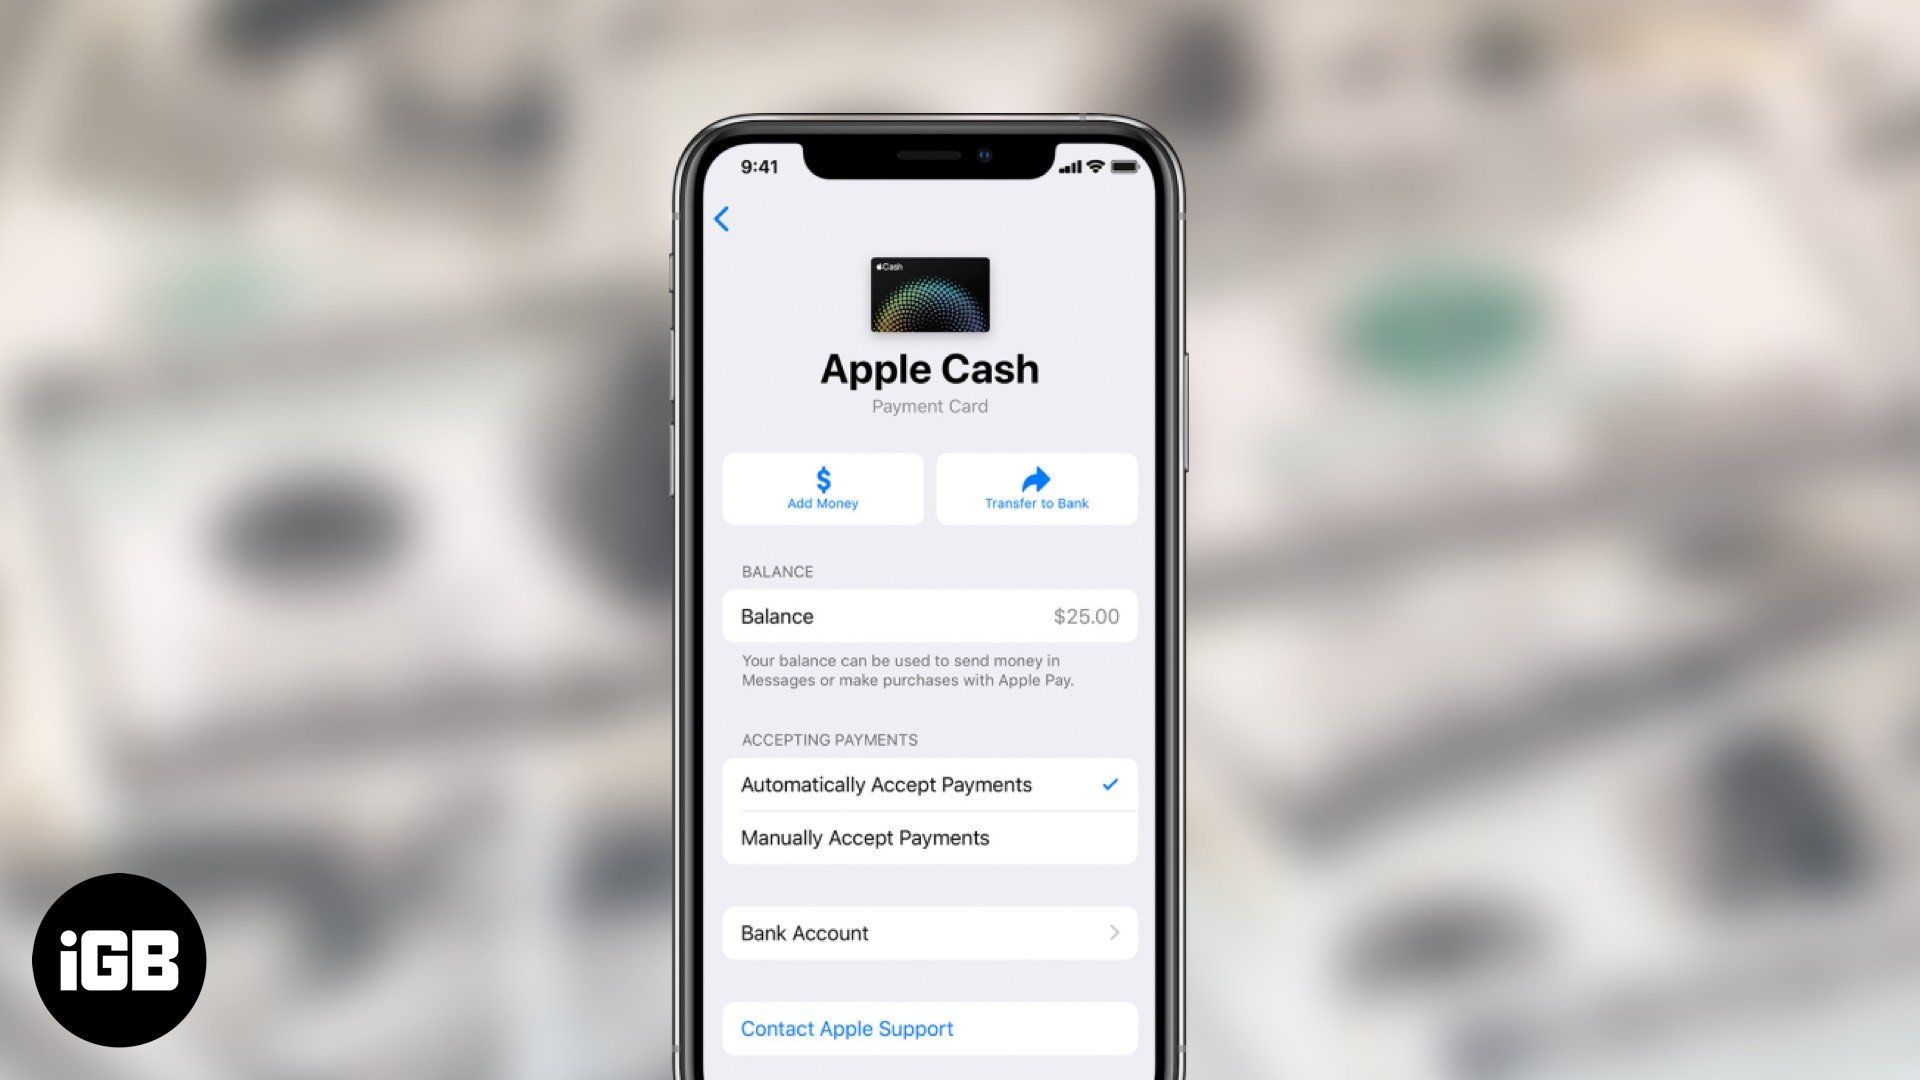 How to transfer apple cash to bank account or debit card